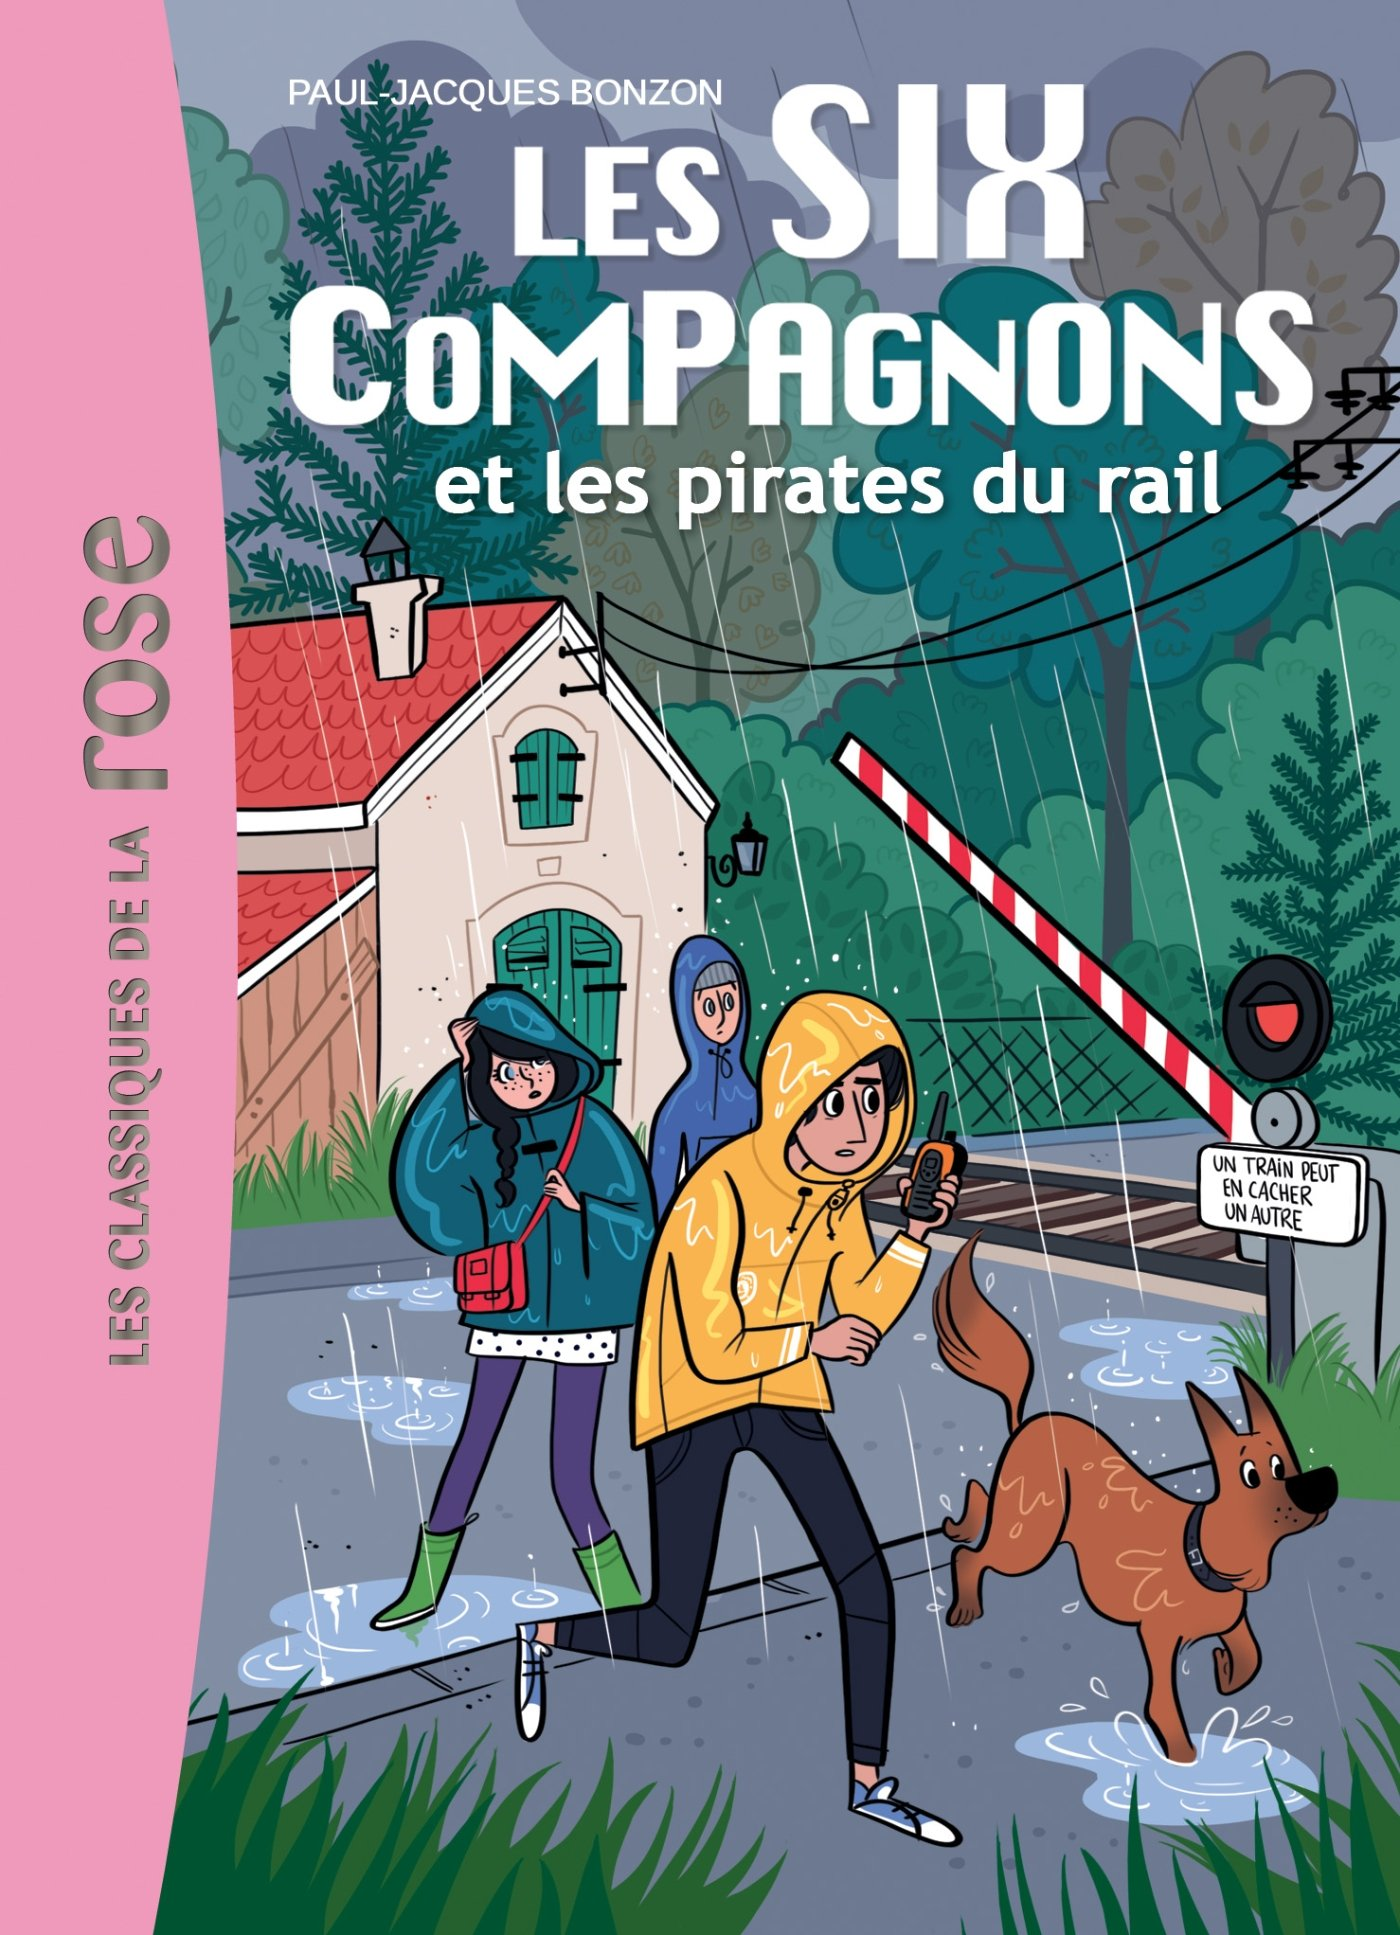 Amazon.in: Buy Les six compagnons 10 - les six compagnons et les pirates du  rail Book Online at Low Prices in India | Les six compagnons 10 - les six  ...